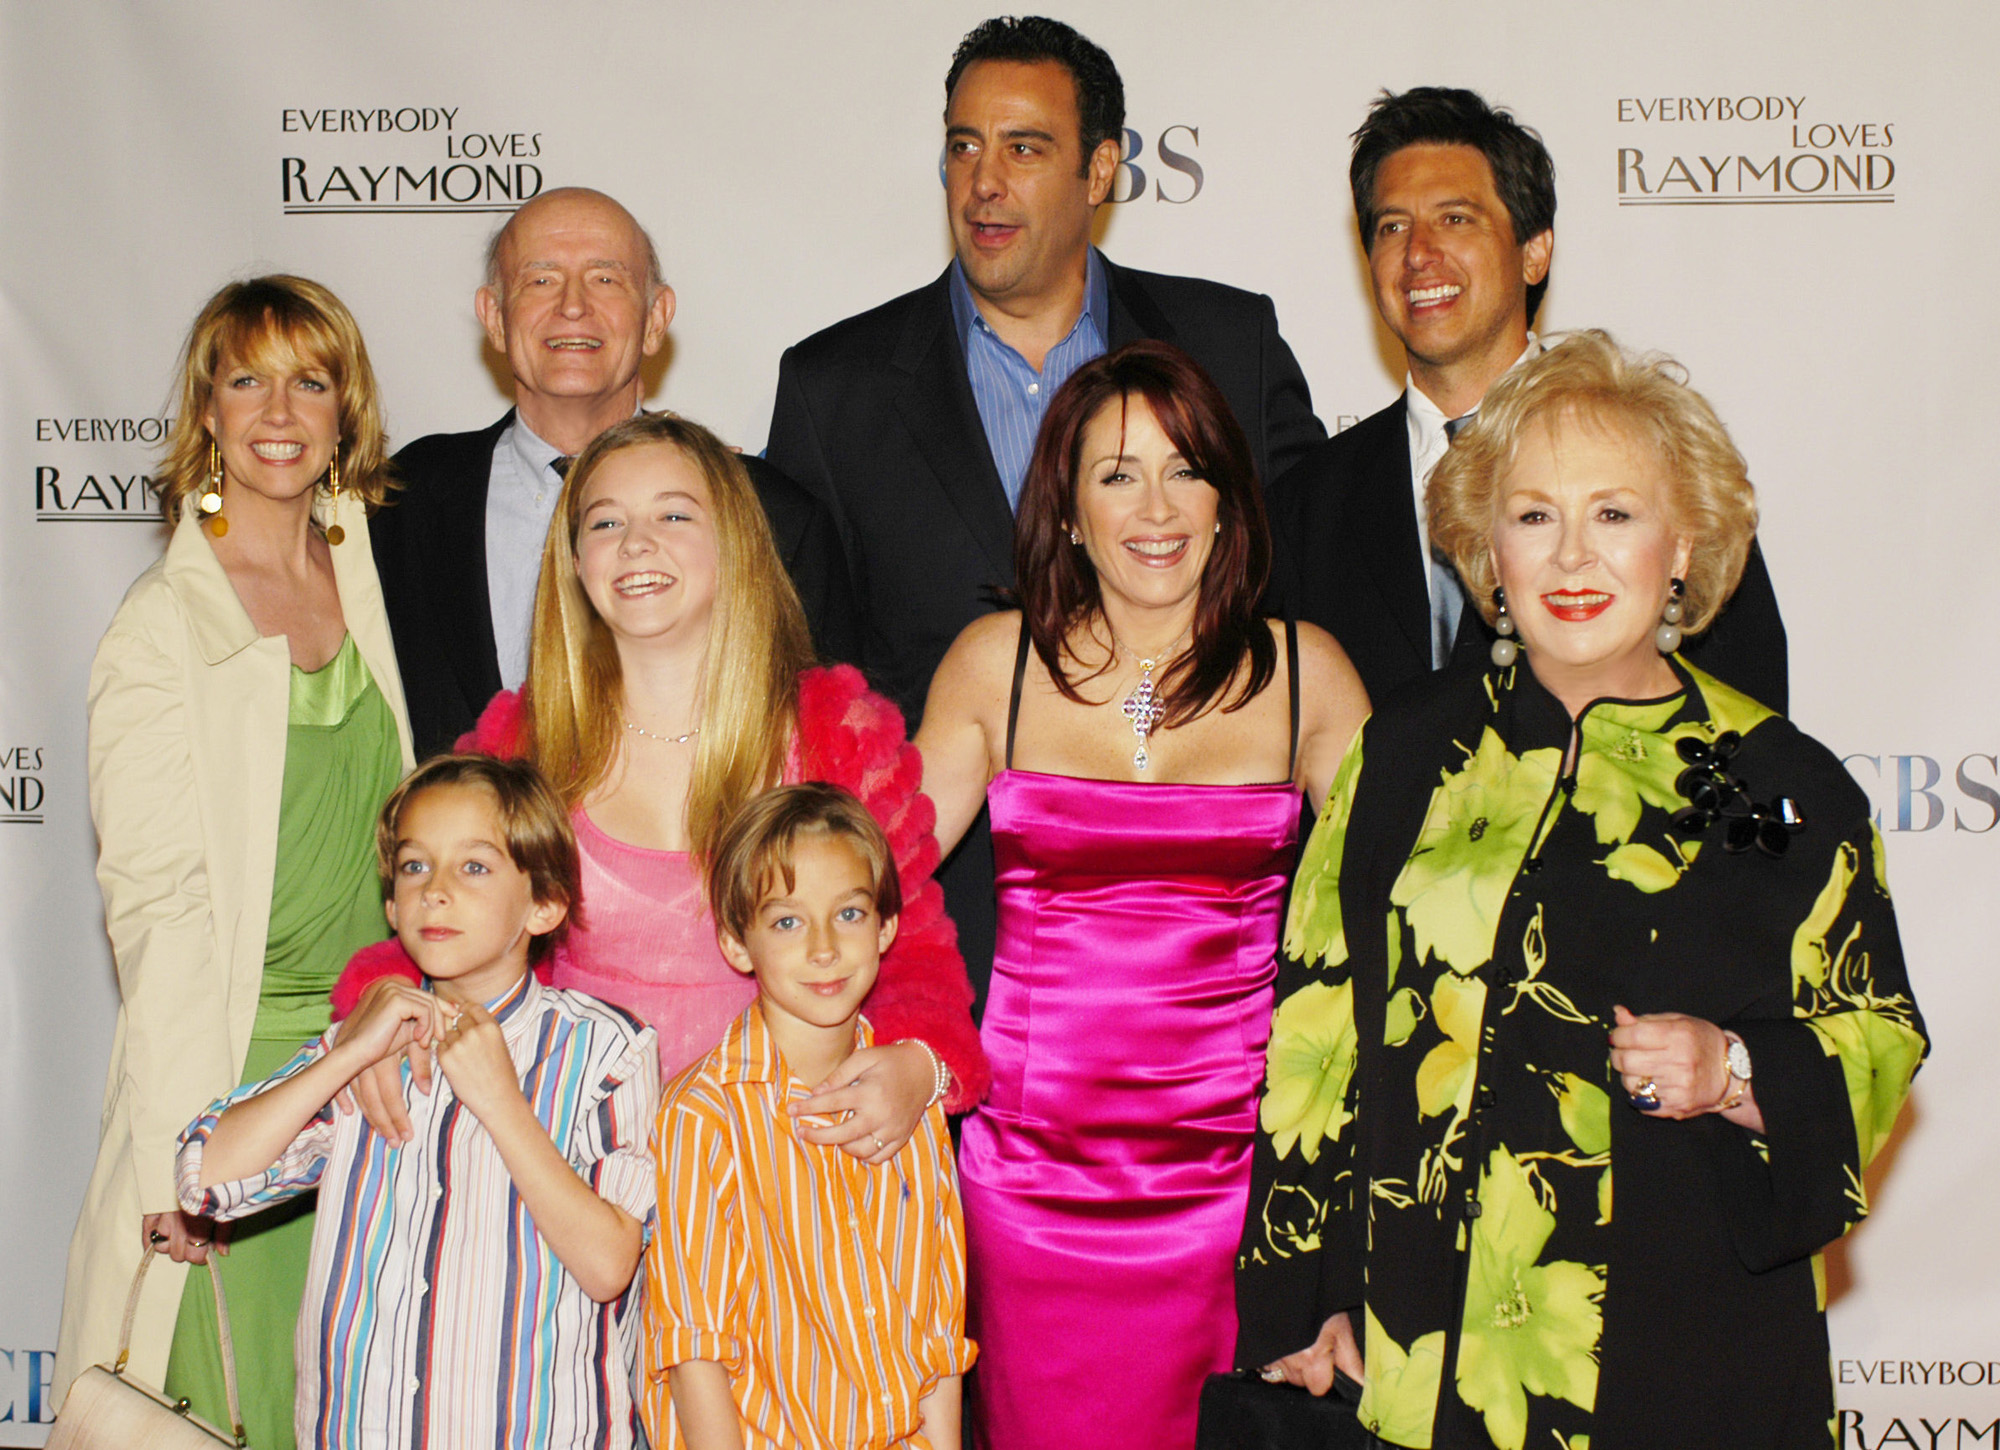 The cast of 'Everybody Loves Raymond' at its series wrap party in 2005.